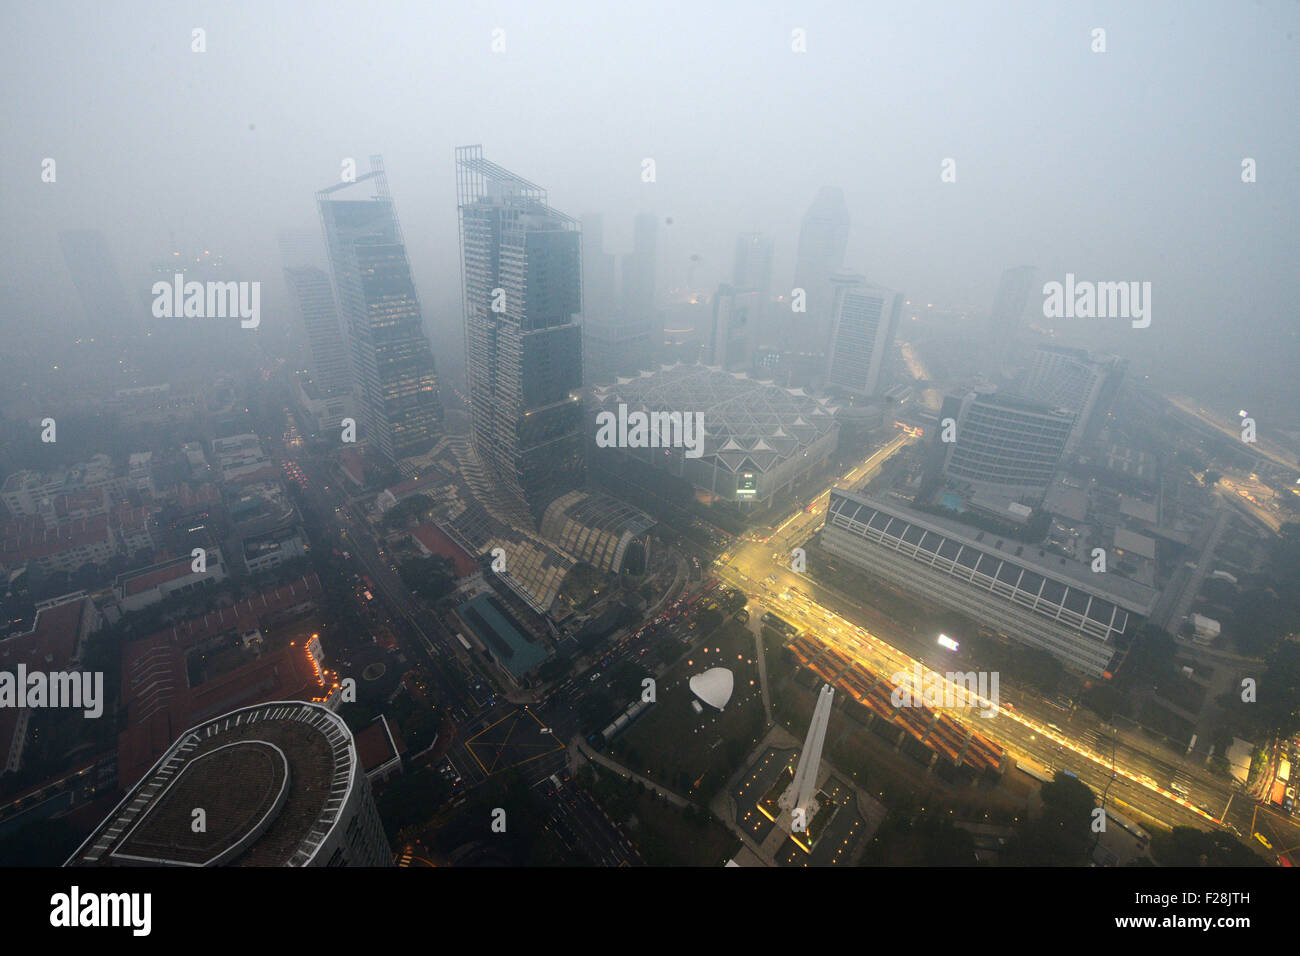 Singapore. 14th Sep, 2015. Haze looms over the Civic District in Singapore, Sept. 14, 2015. Singapore's haze - Stock Image